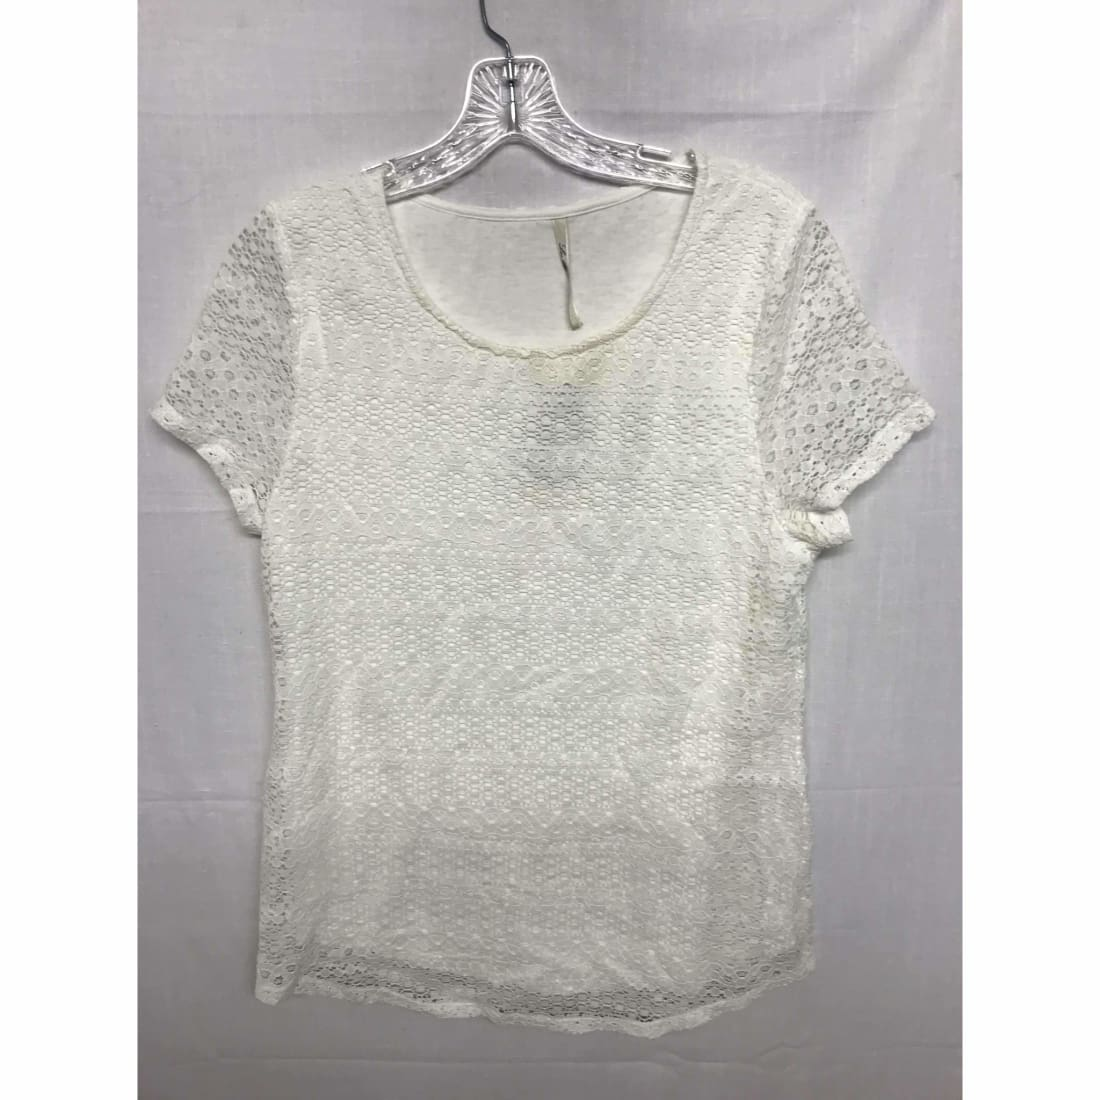 Leo & Nicole Womens Short Sleeve Lace Overlay Blouse S / Off White Tops & Blouses